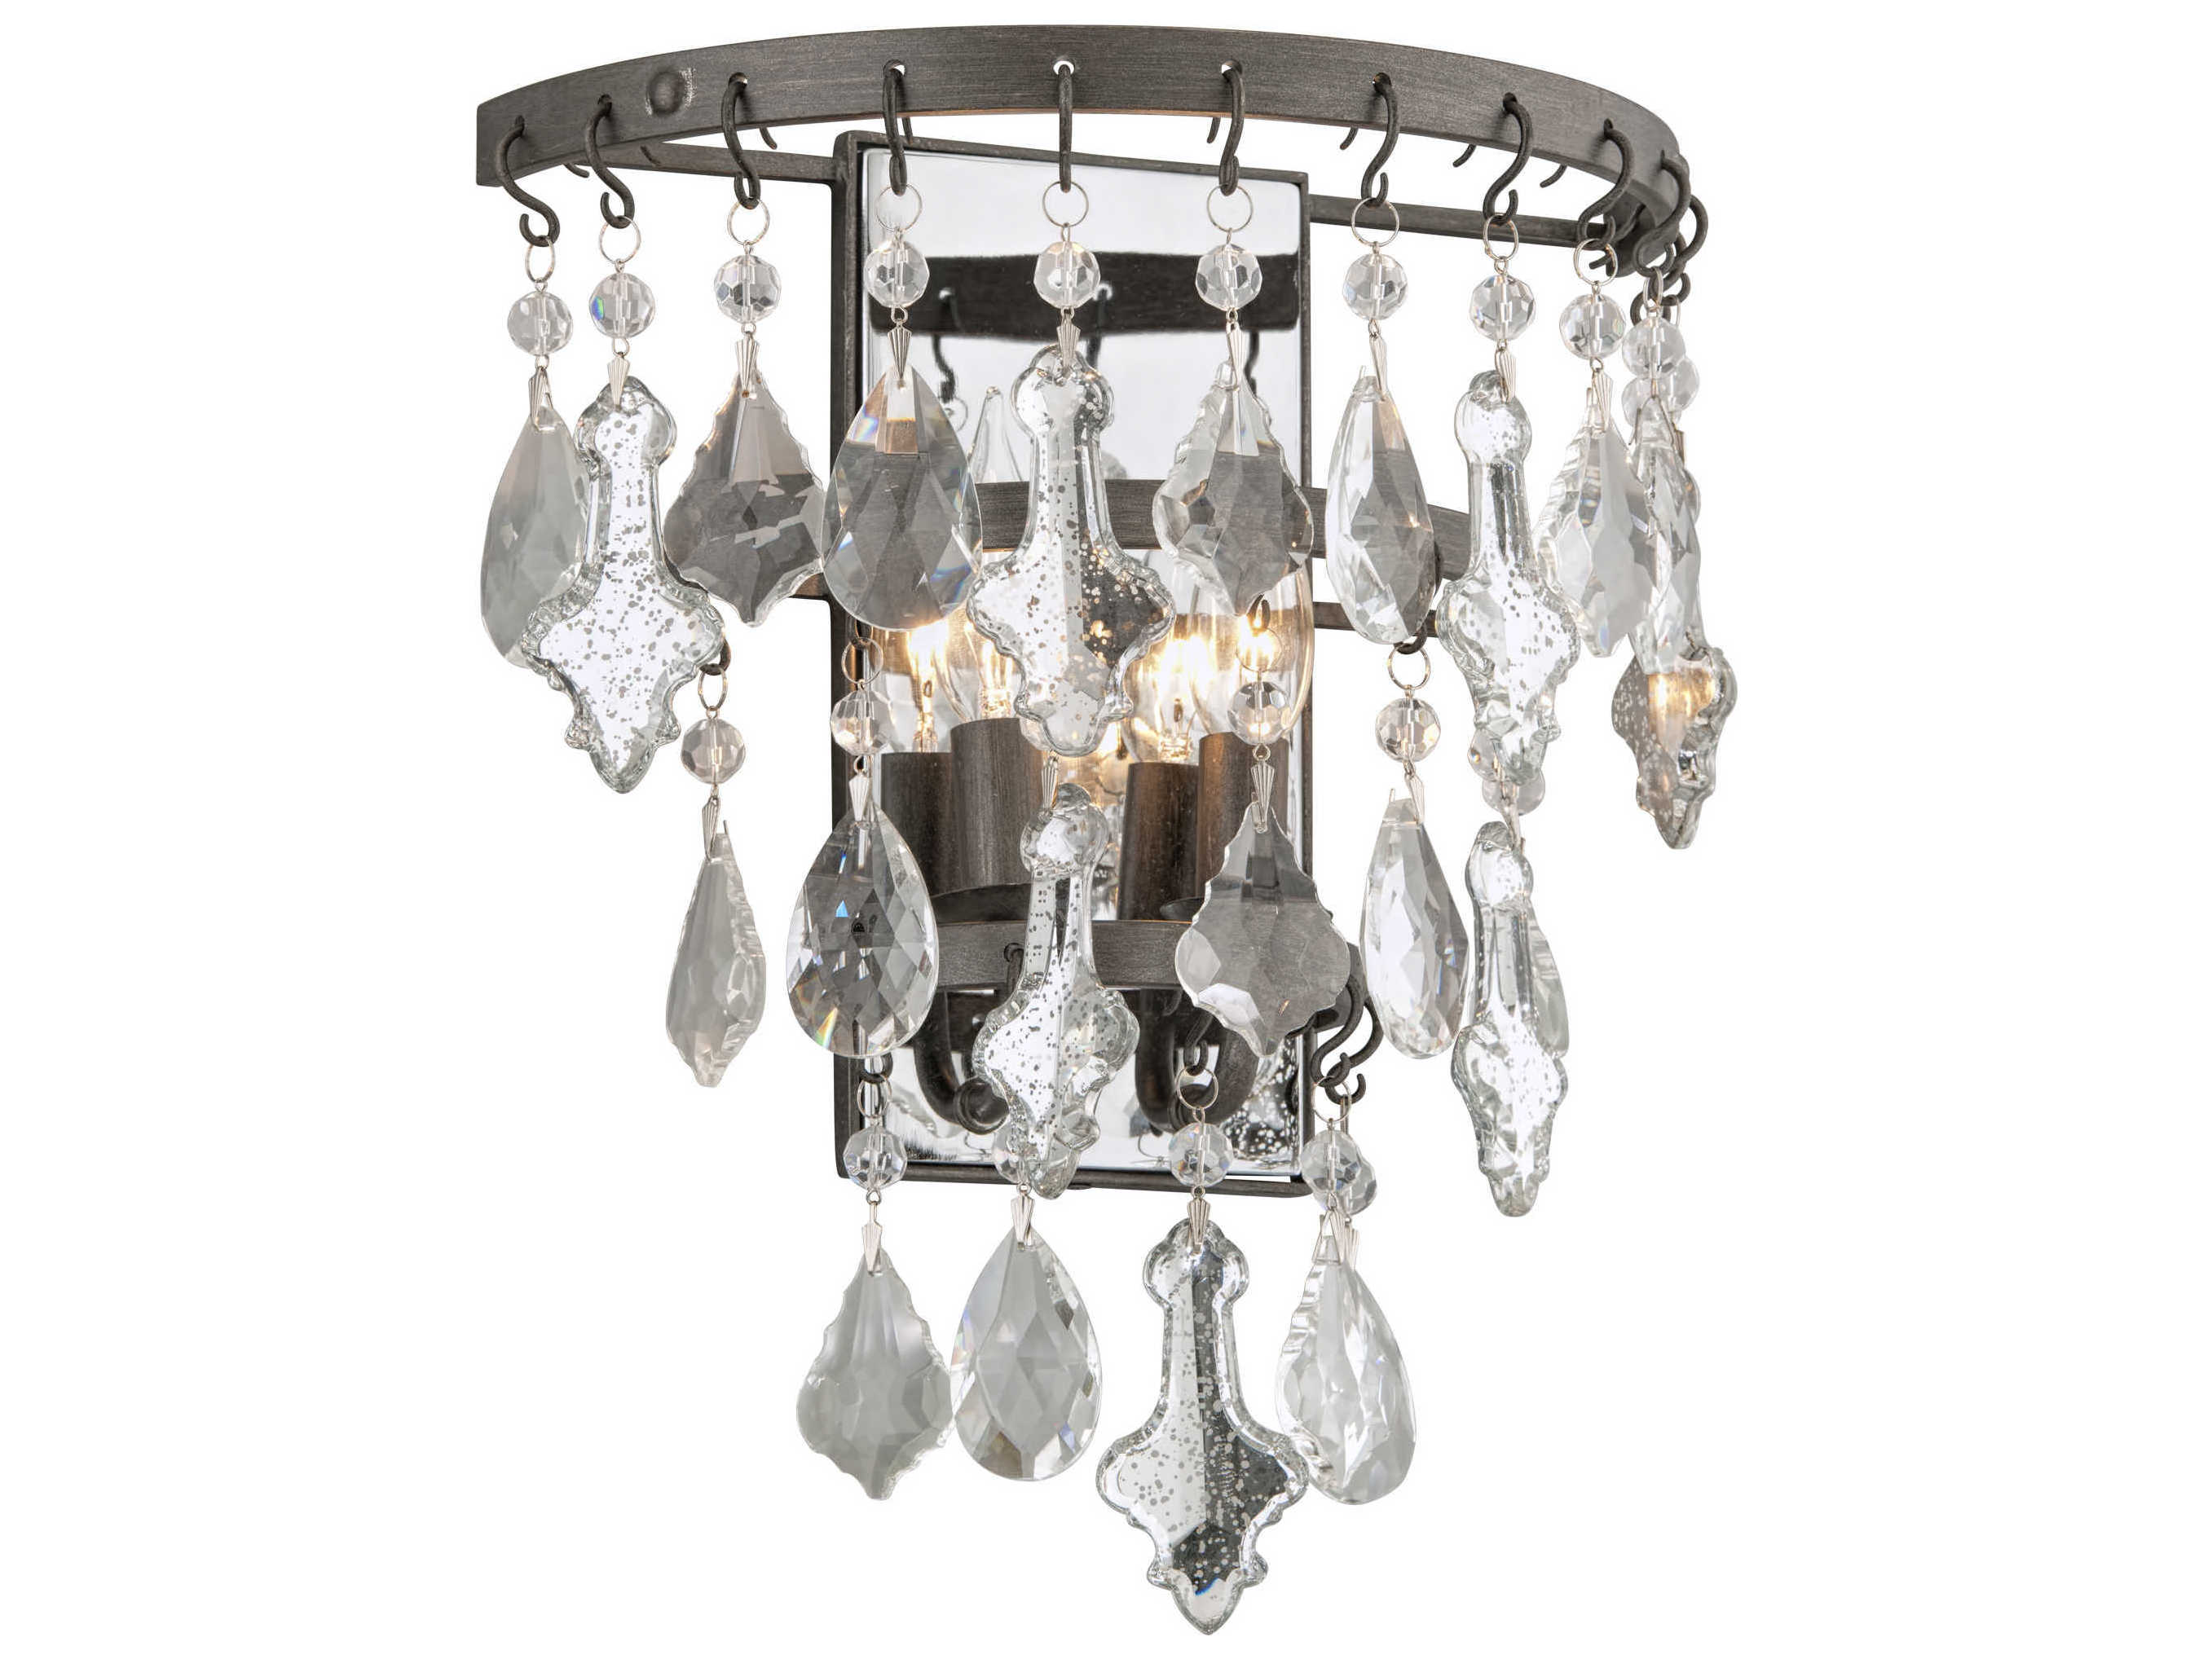 Troy Lighting Meritage Graphite Two Light 12 Wide Wall